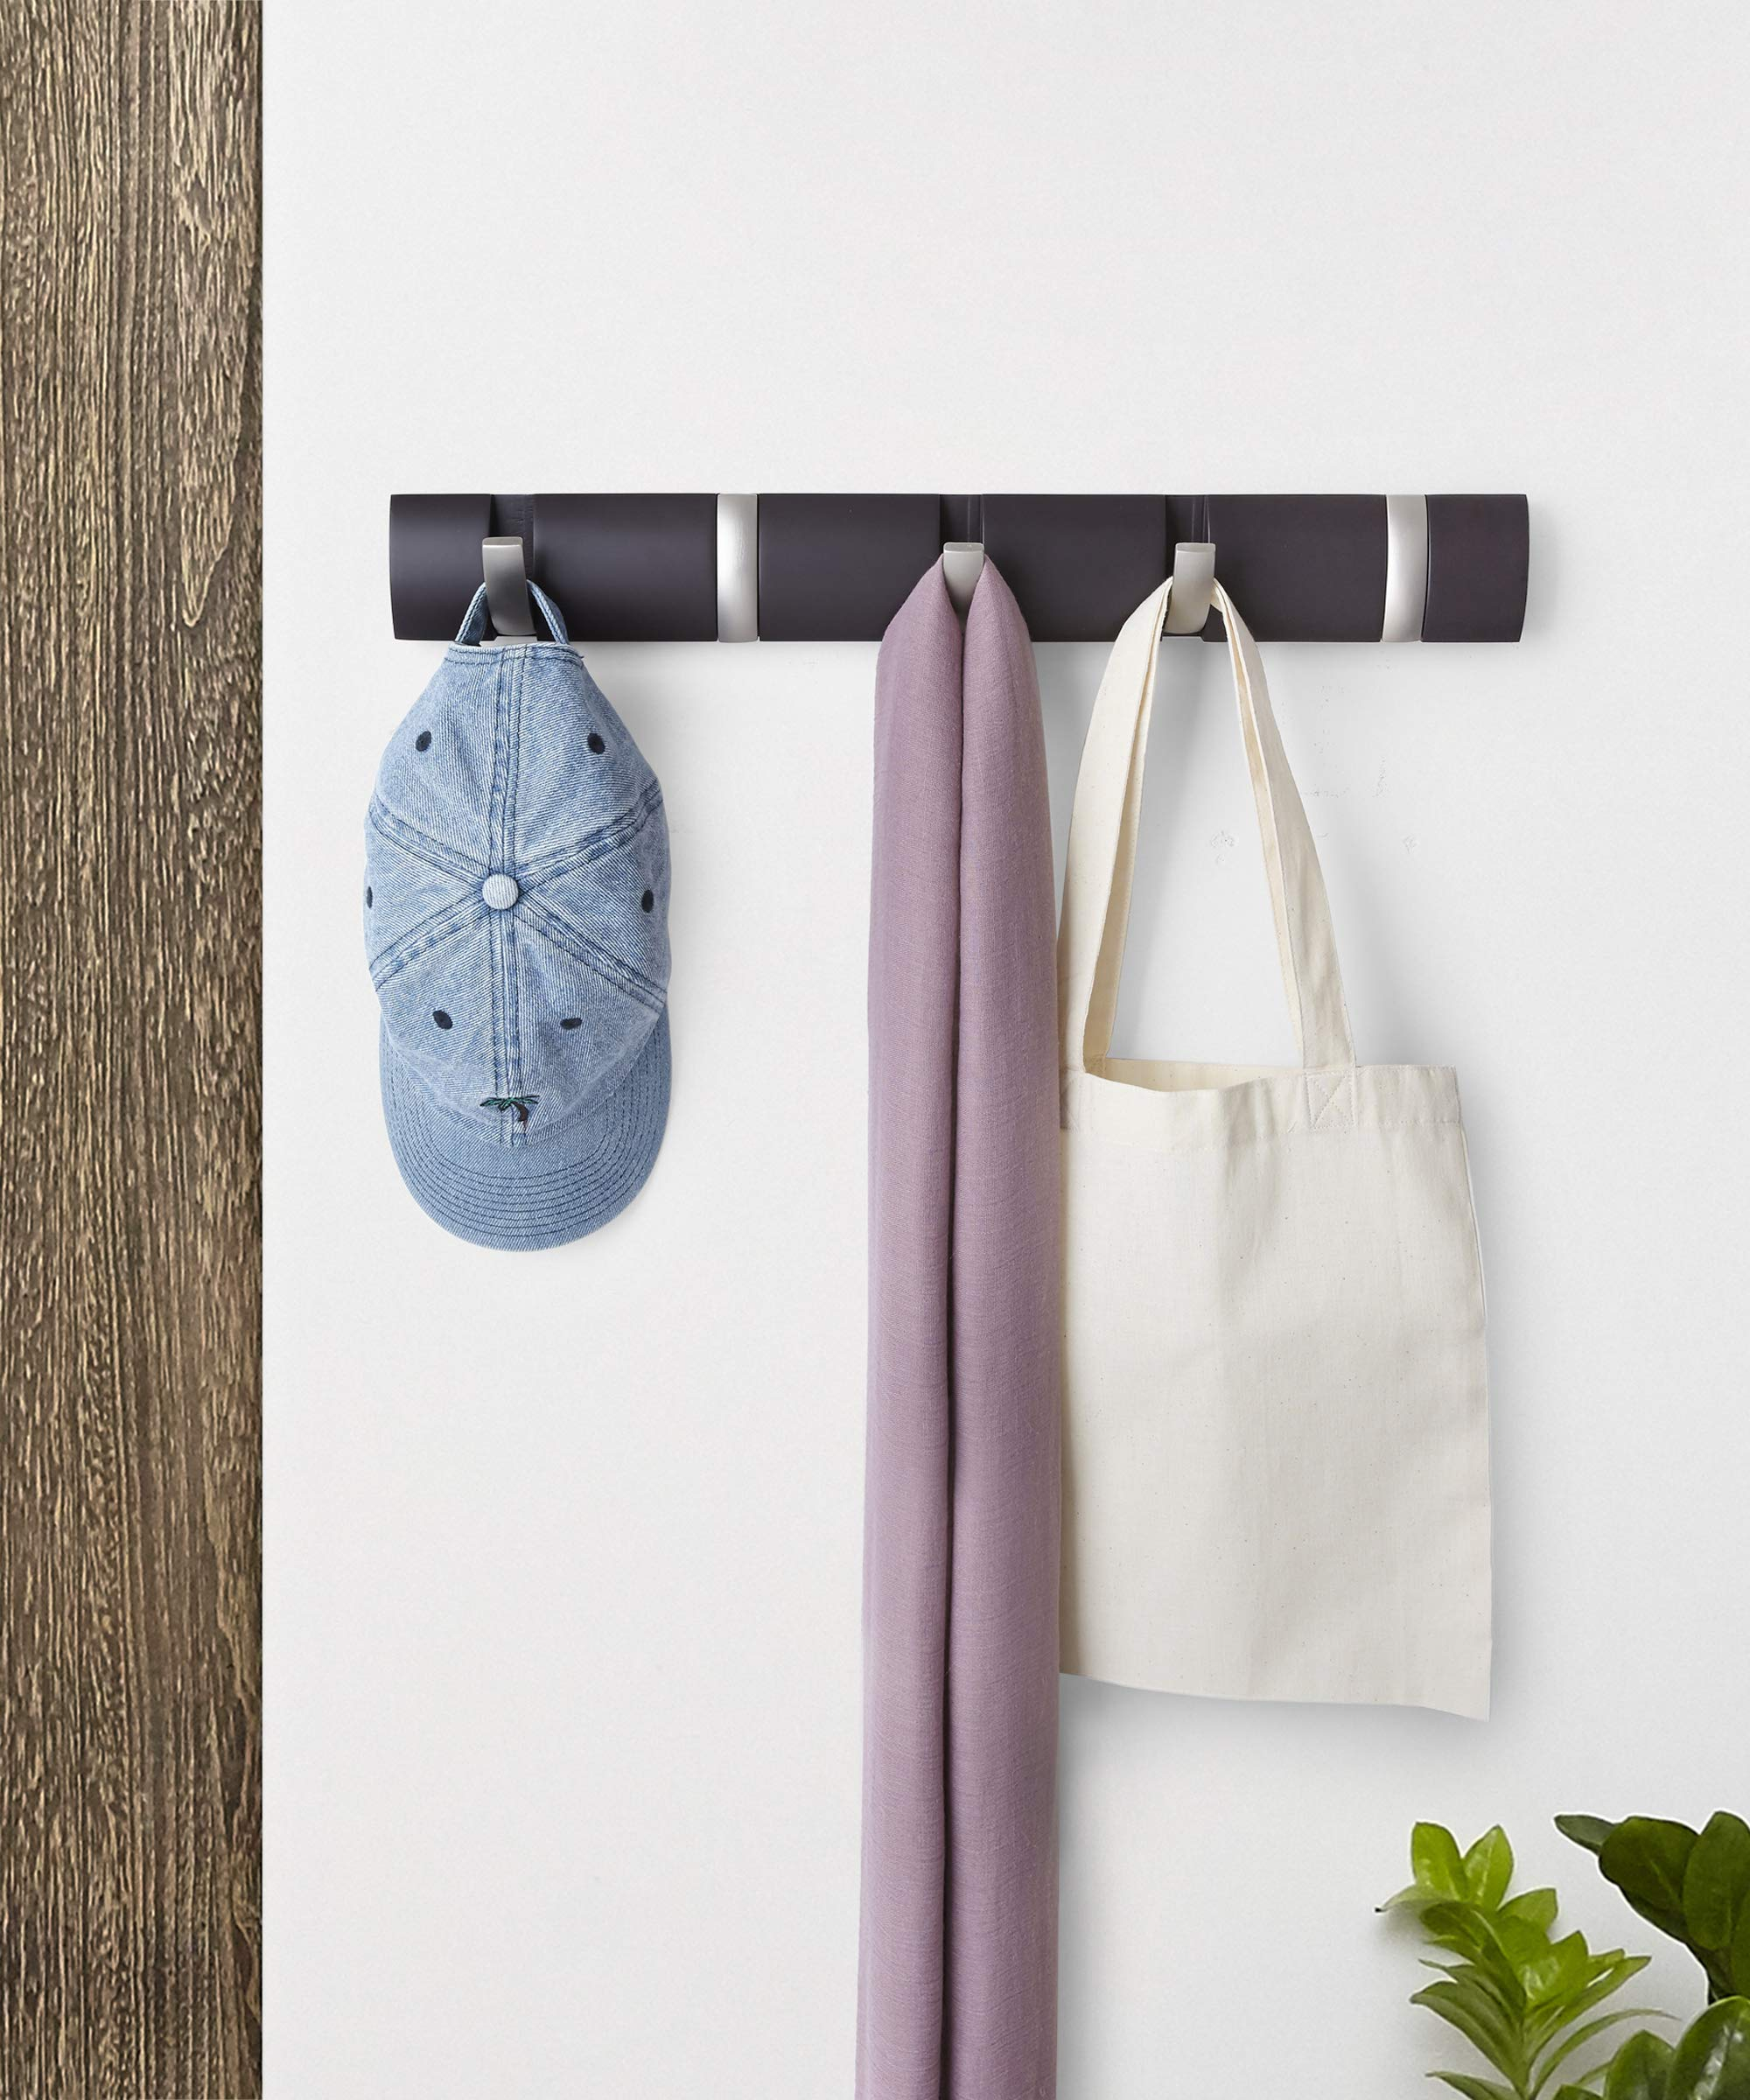 Umbra Flip 5-Hook Wall Mounted Floating Coat Rack – Modern, Sleek, Space-Saving Coat Hanger with 5 Retractable Hooks to Hang Coats, Scarfs, Purses and More, Espresso/Nickel - MULTI-PURPOSE WALL MOUNTED HANGER: More than just a coat rack, Umbra Flip is a unique wall mounted rail that features retractable hooks for hanging a variety of items including coats, scarves, purses, umbrellas, towels, clothing and more MODERN SPACE-SAVING DESIGN: Unlike traditional coat racks that eat up valuable floor space, Flip(R) is a wall-mounted solution that is ideal for small living spaces or confined entryways thanks to its sleek, streamlined profile and retractable hooks that stow away when not in use ATTRACTIVE & VERSATILE SOLUTION: Available in a variety of stylish finishes to match your existing decor, Flip(R) looks great and is versatile enough to use on virtually any wall in your entryway, bedroom, bathroom, office, or dorm room - entryway-furniture-decor, entryway-laundry-room, coat-racks - 81DunKIJGaL -